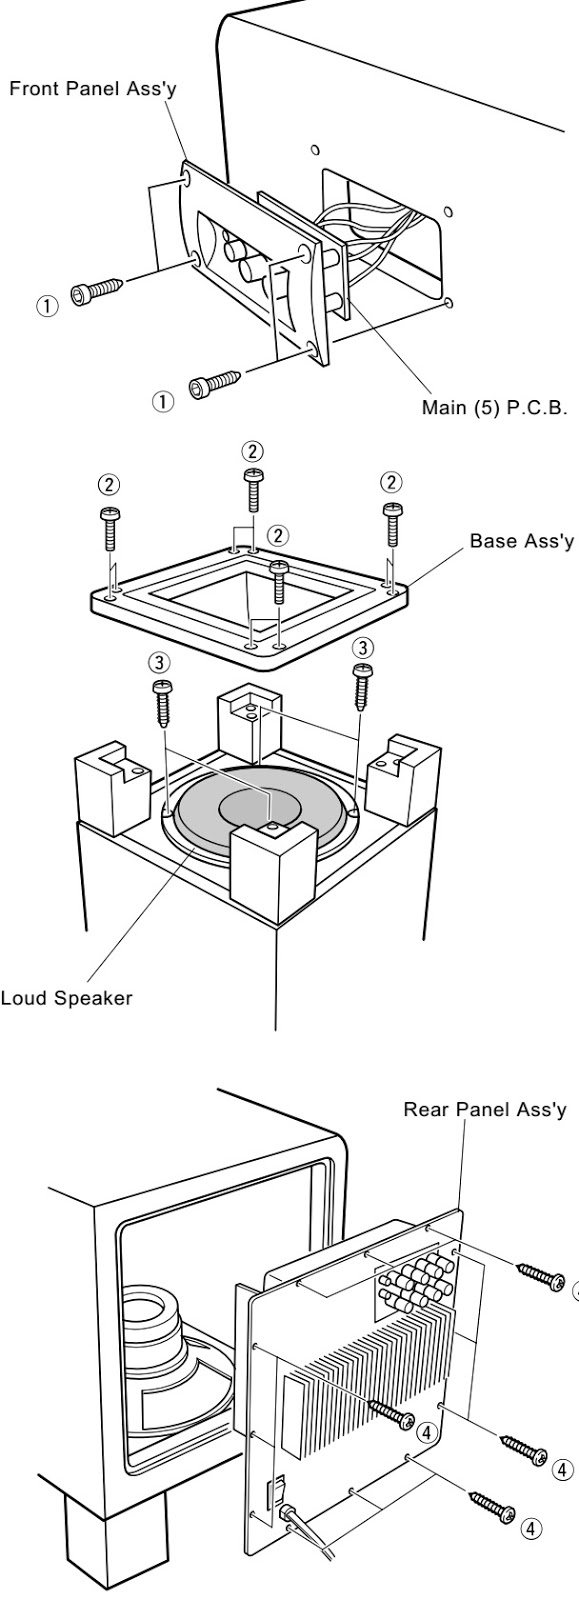 Yamaha Yst Sw320 Subwoofer Circuit Diagram Adjustments When Assembling The Rear Panel Check To Ensure That Gasket Is Not Damaged So As Prevent Air Leakage From Occurring